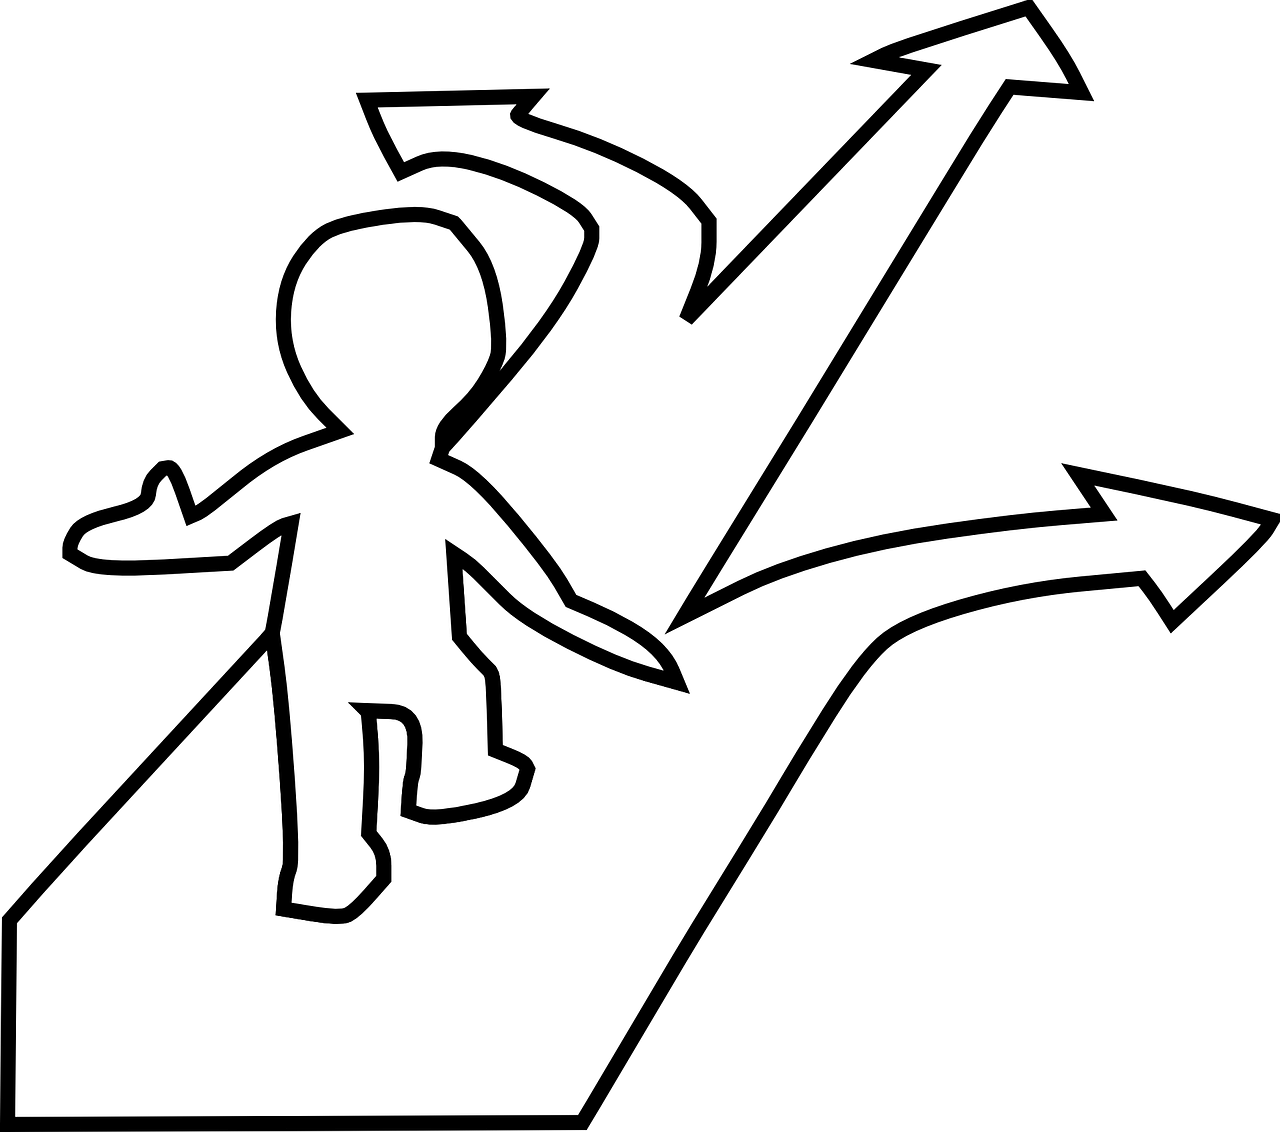 outline of person facing a choice of three directions/arrows